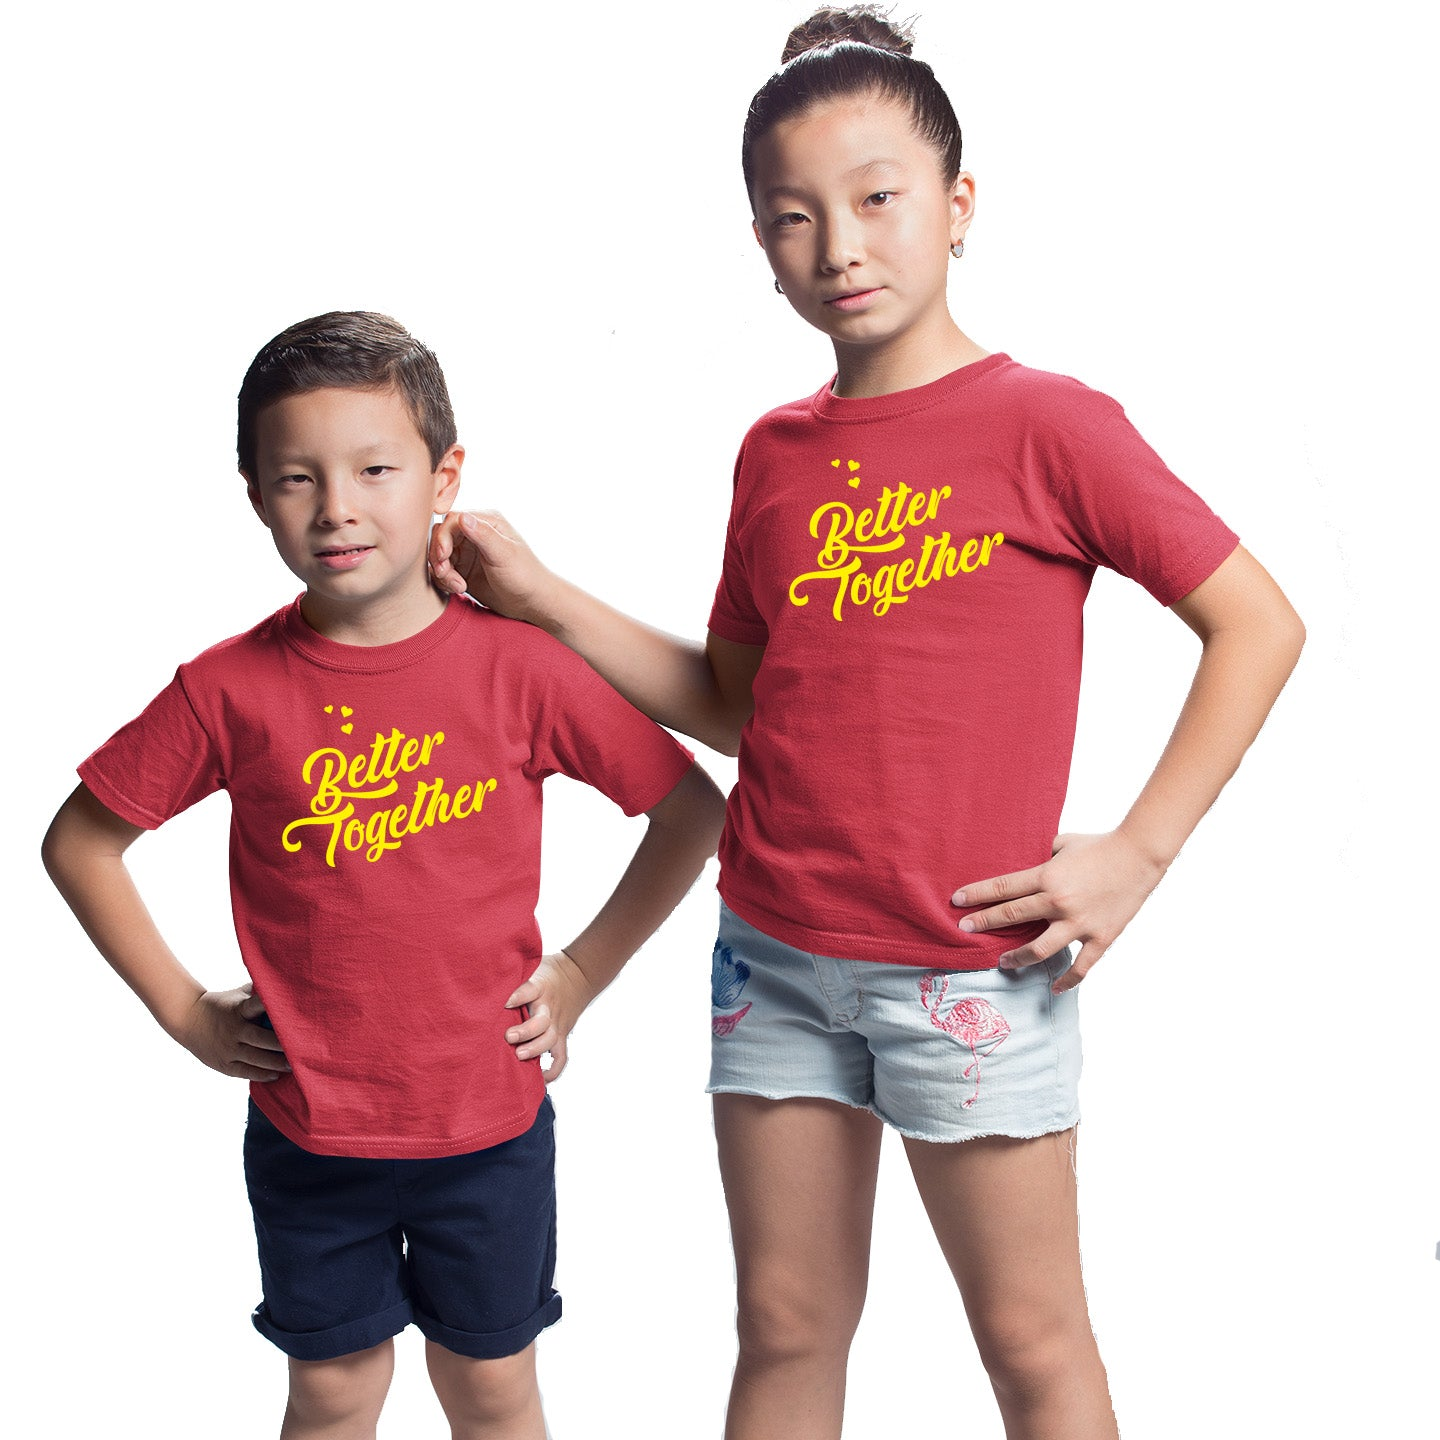 Sprinklecart Matching Matching Better Together Printed Cotton Siblings T Shirts for Kids (Red)